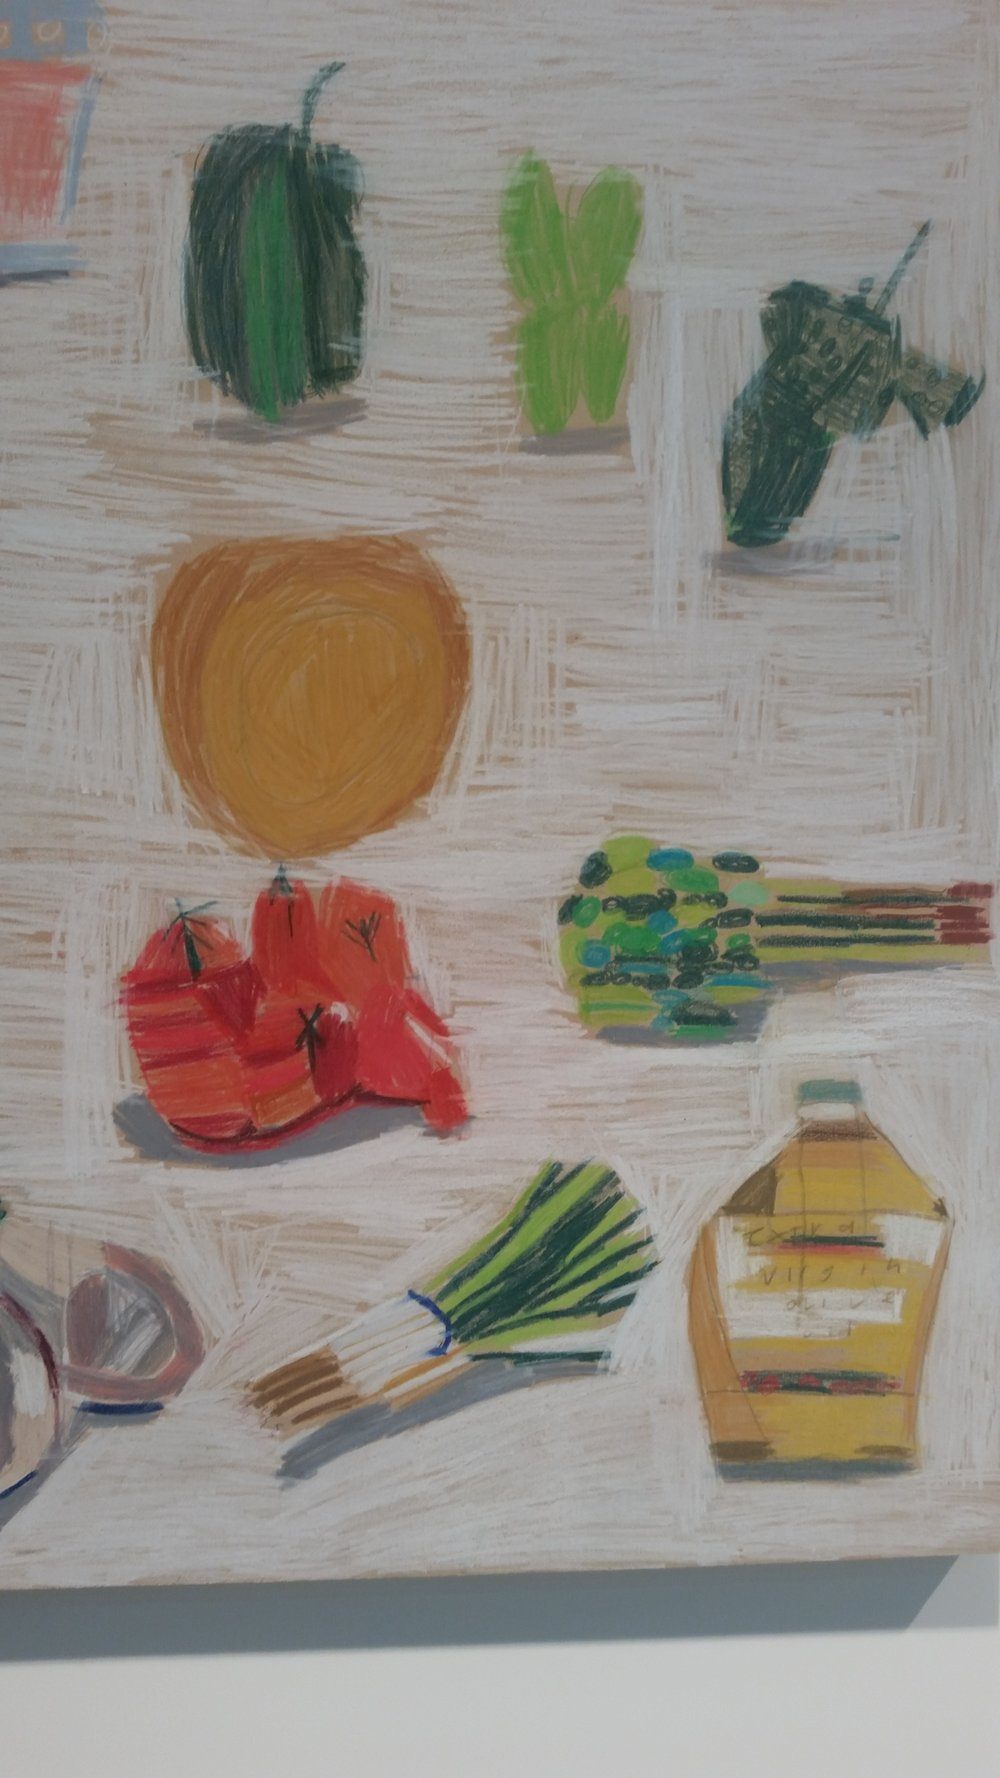 Caitlin Moloney,  Middle Eastern Recipe (detail) , 60 x 80 cm, pencil on board